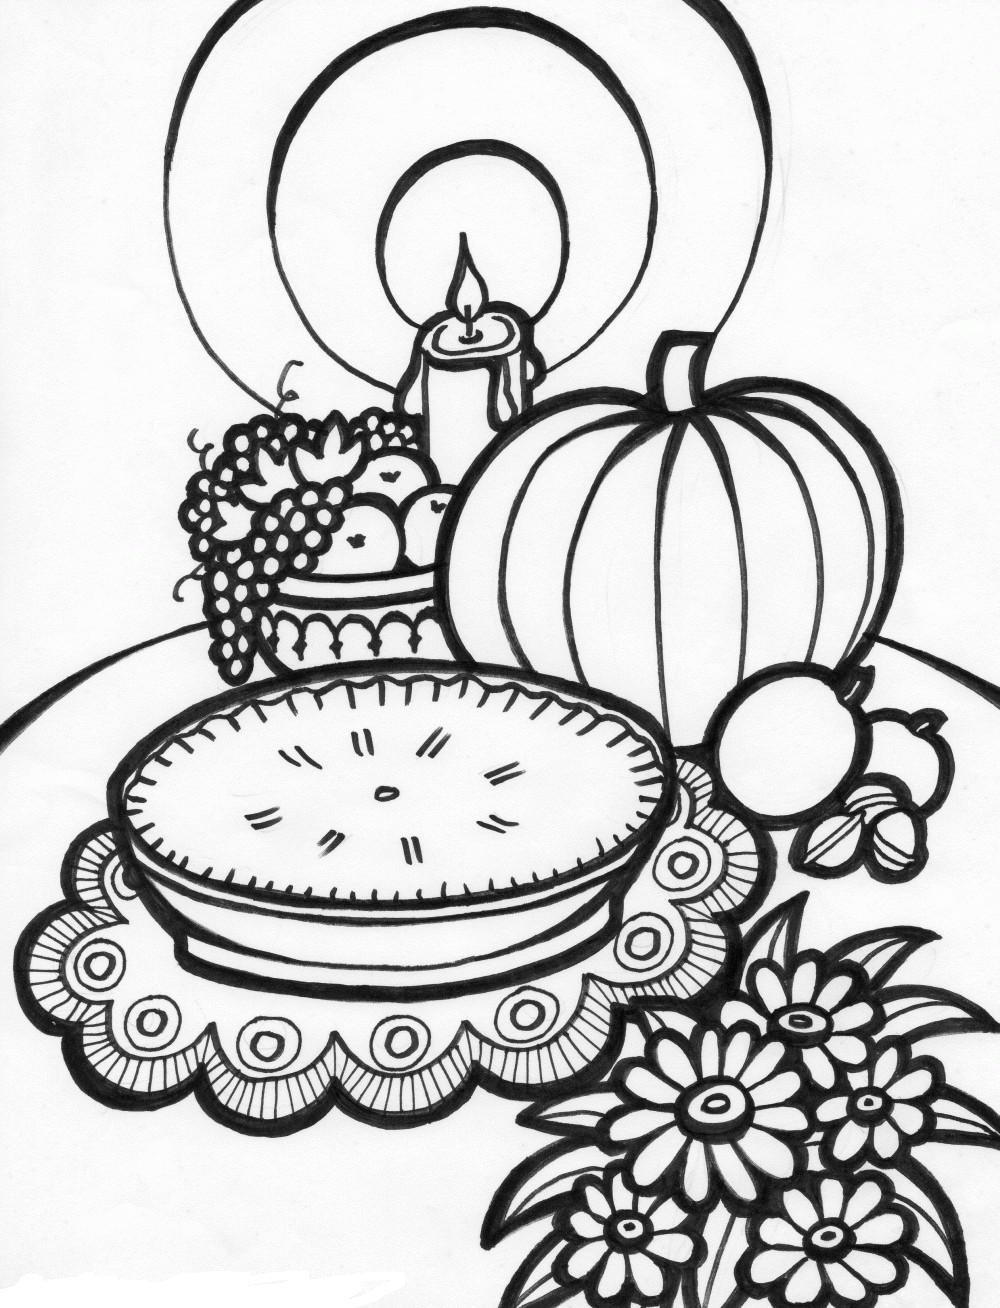 Massif image regarding turkey coloring printable